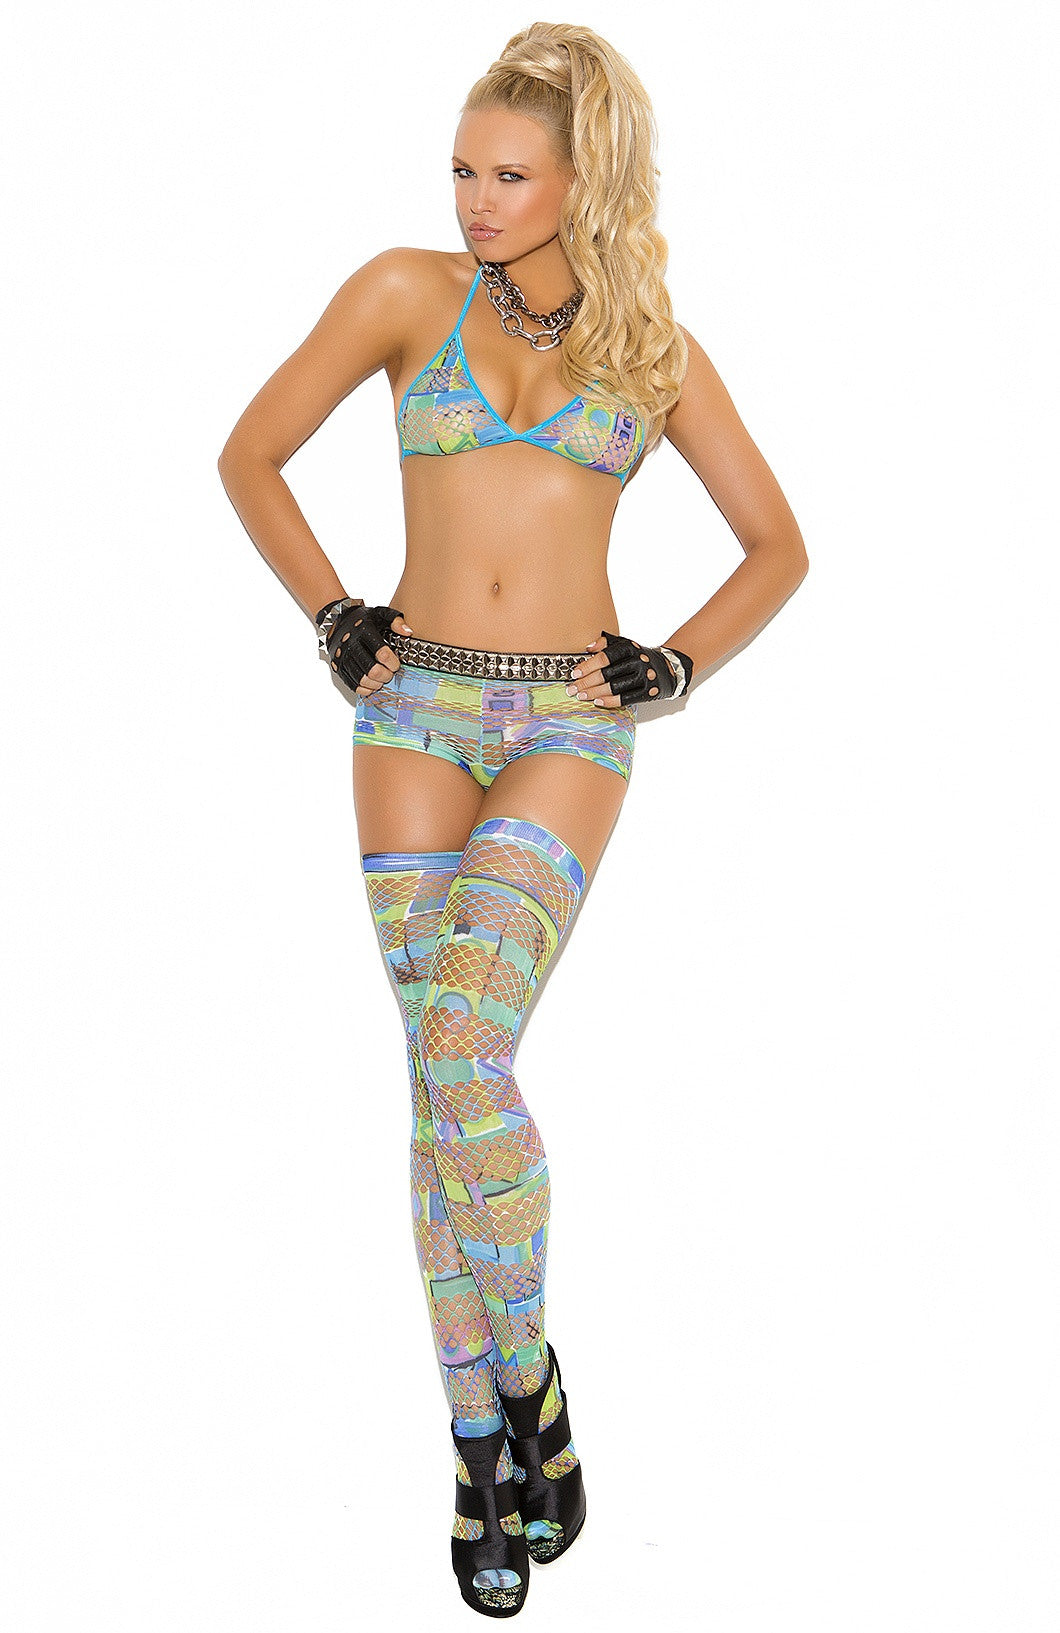 EM-8938 Multi color fishnet set - Sexylingerieland  - 1